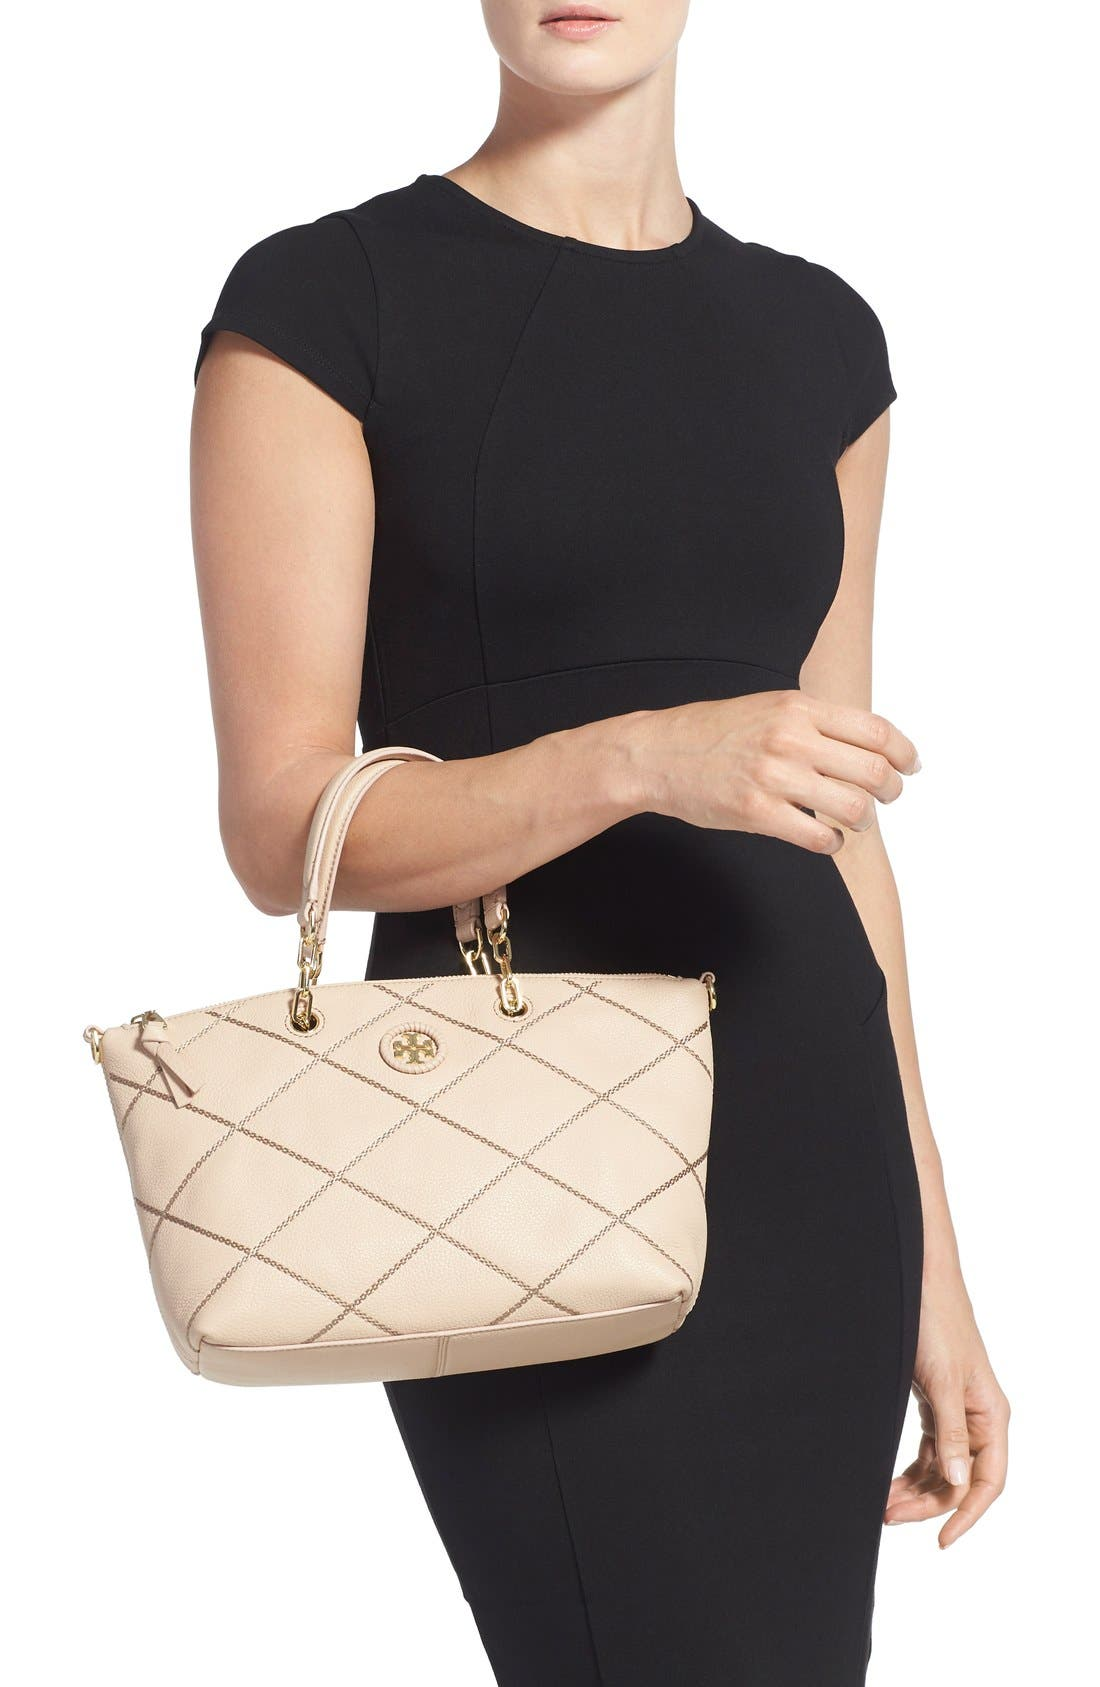 Alternate Image 2  - Tory Burch 'Small Stitch' Leather Satchel (Nordstrom Exclusive)